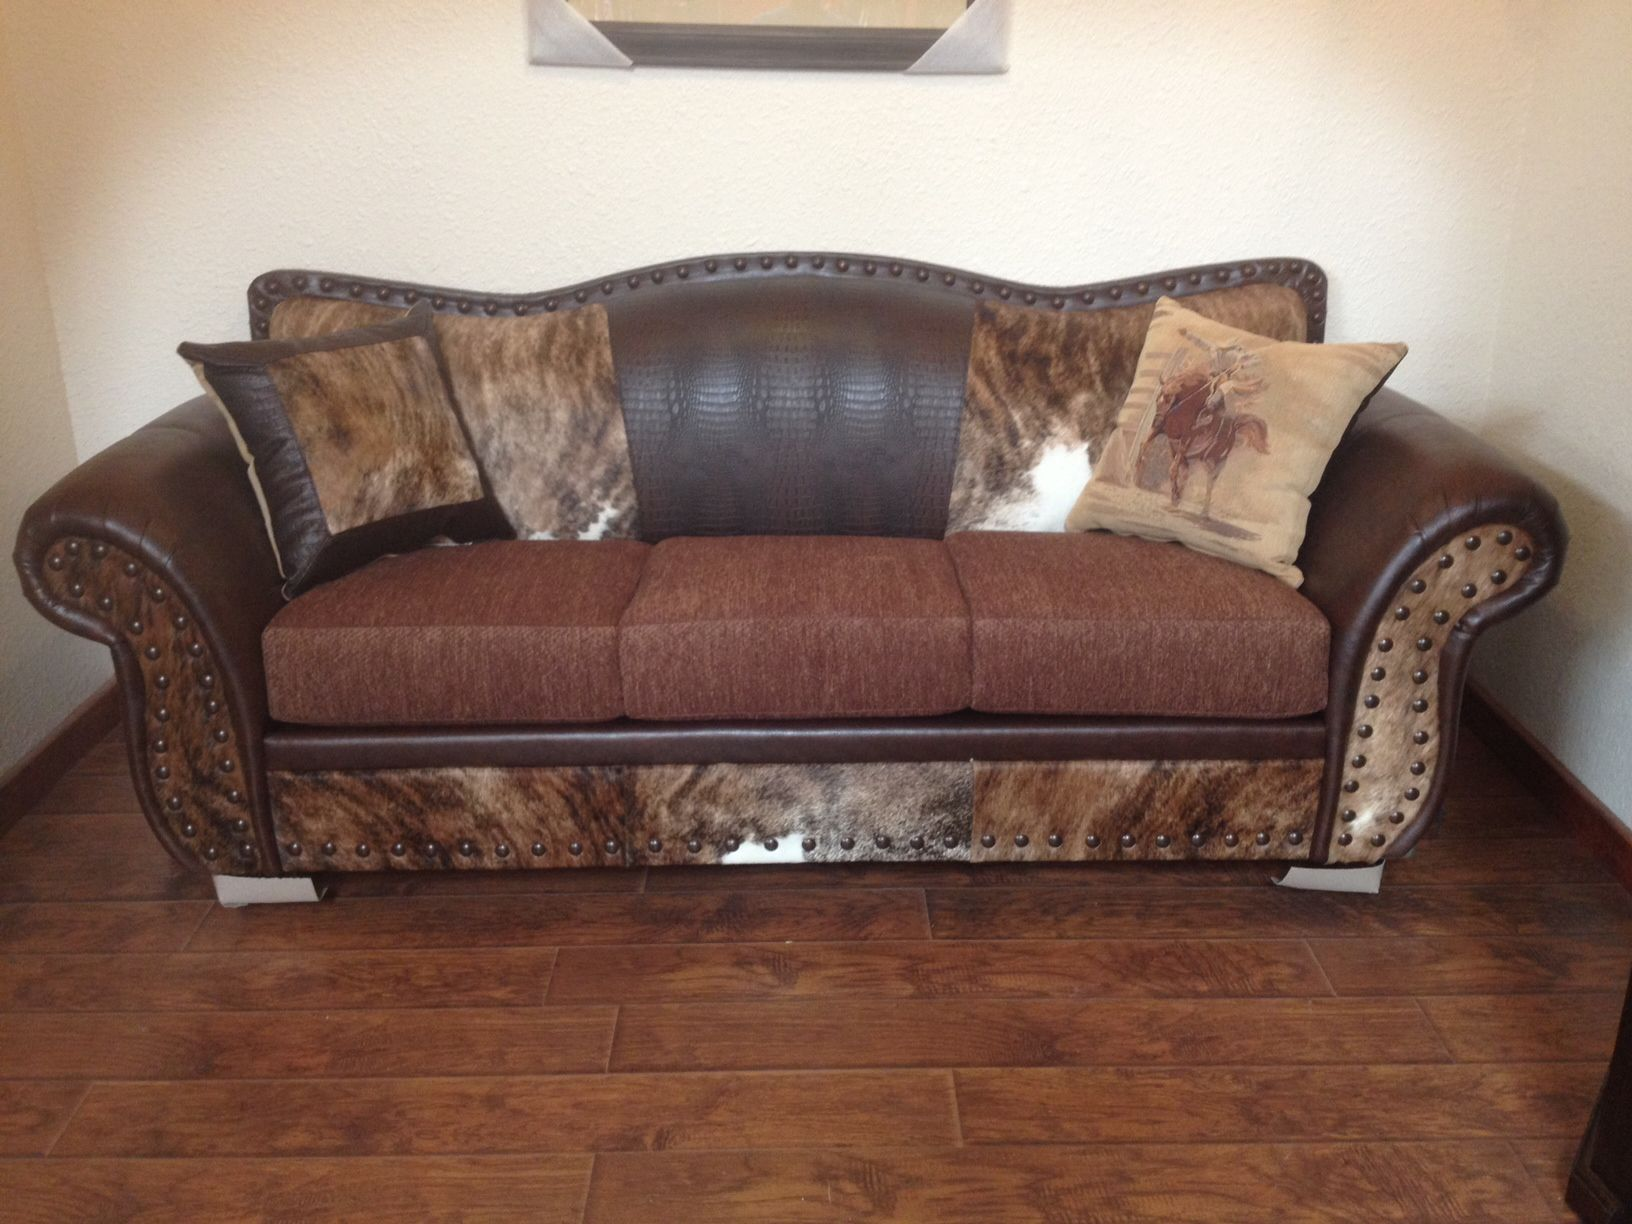 Western Style Sofa Covers Billig Brugt Chaiselong Quotsofa Has Cowhide Bonded Leather And Fabric Cushions 94l